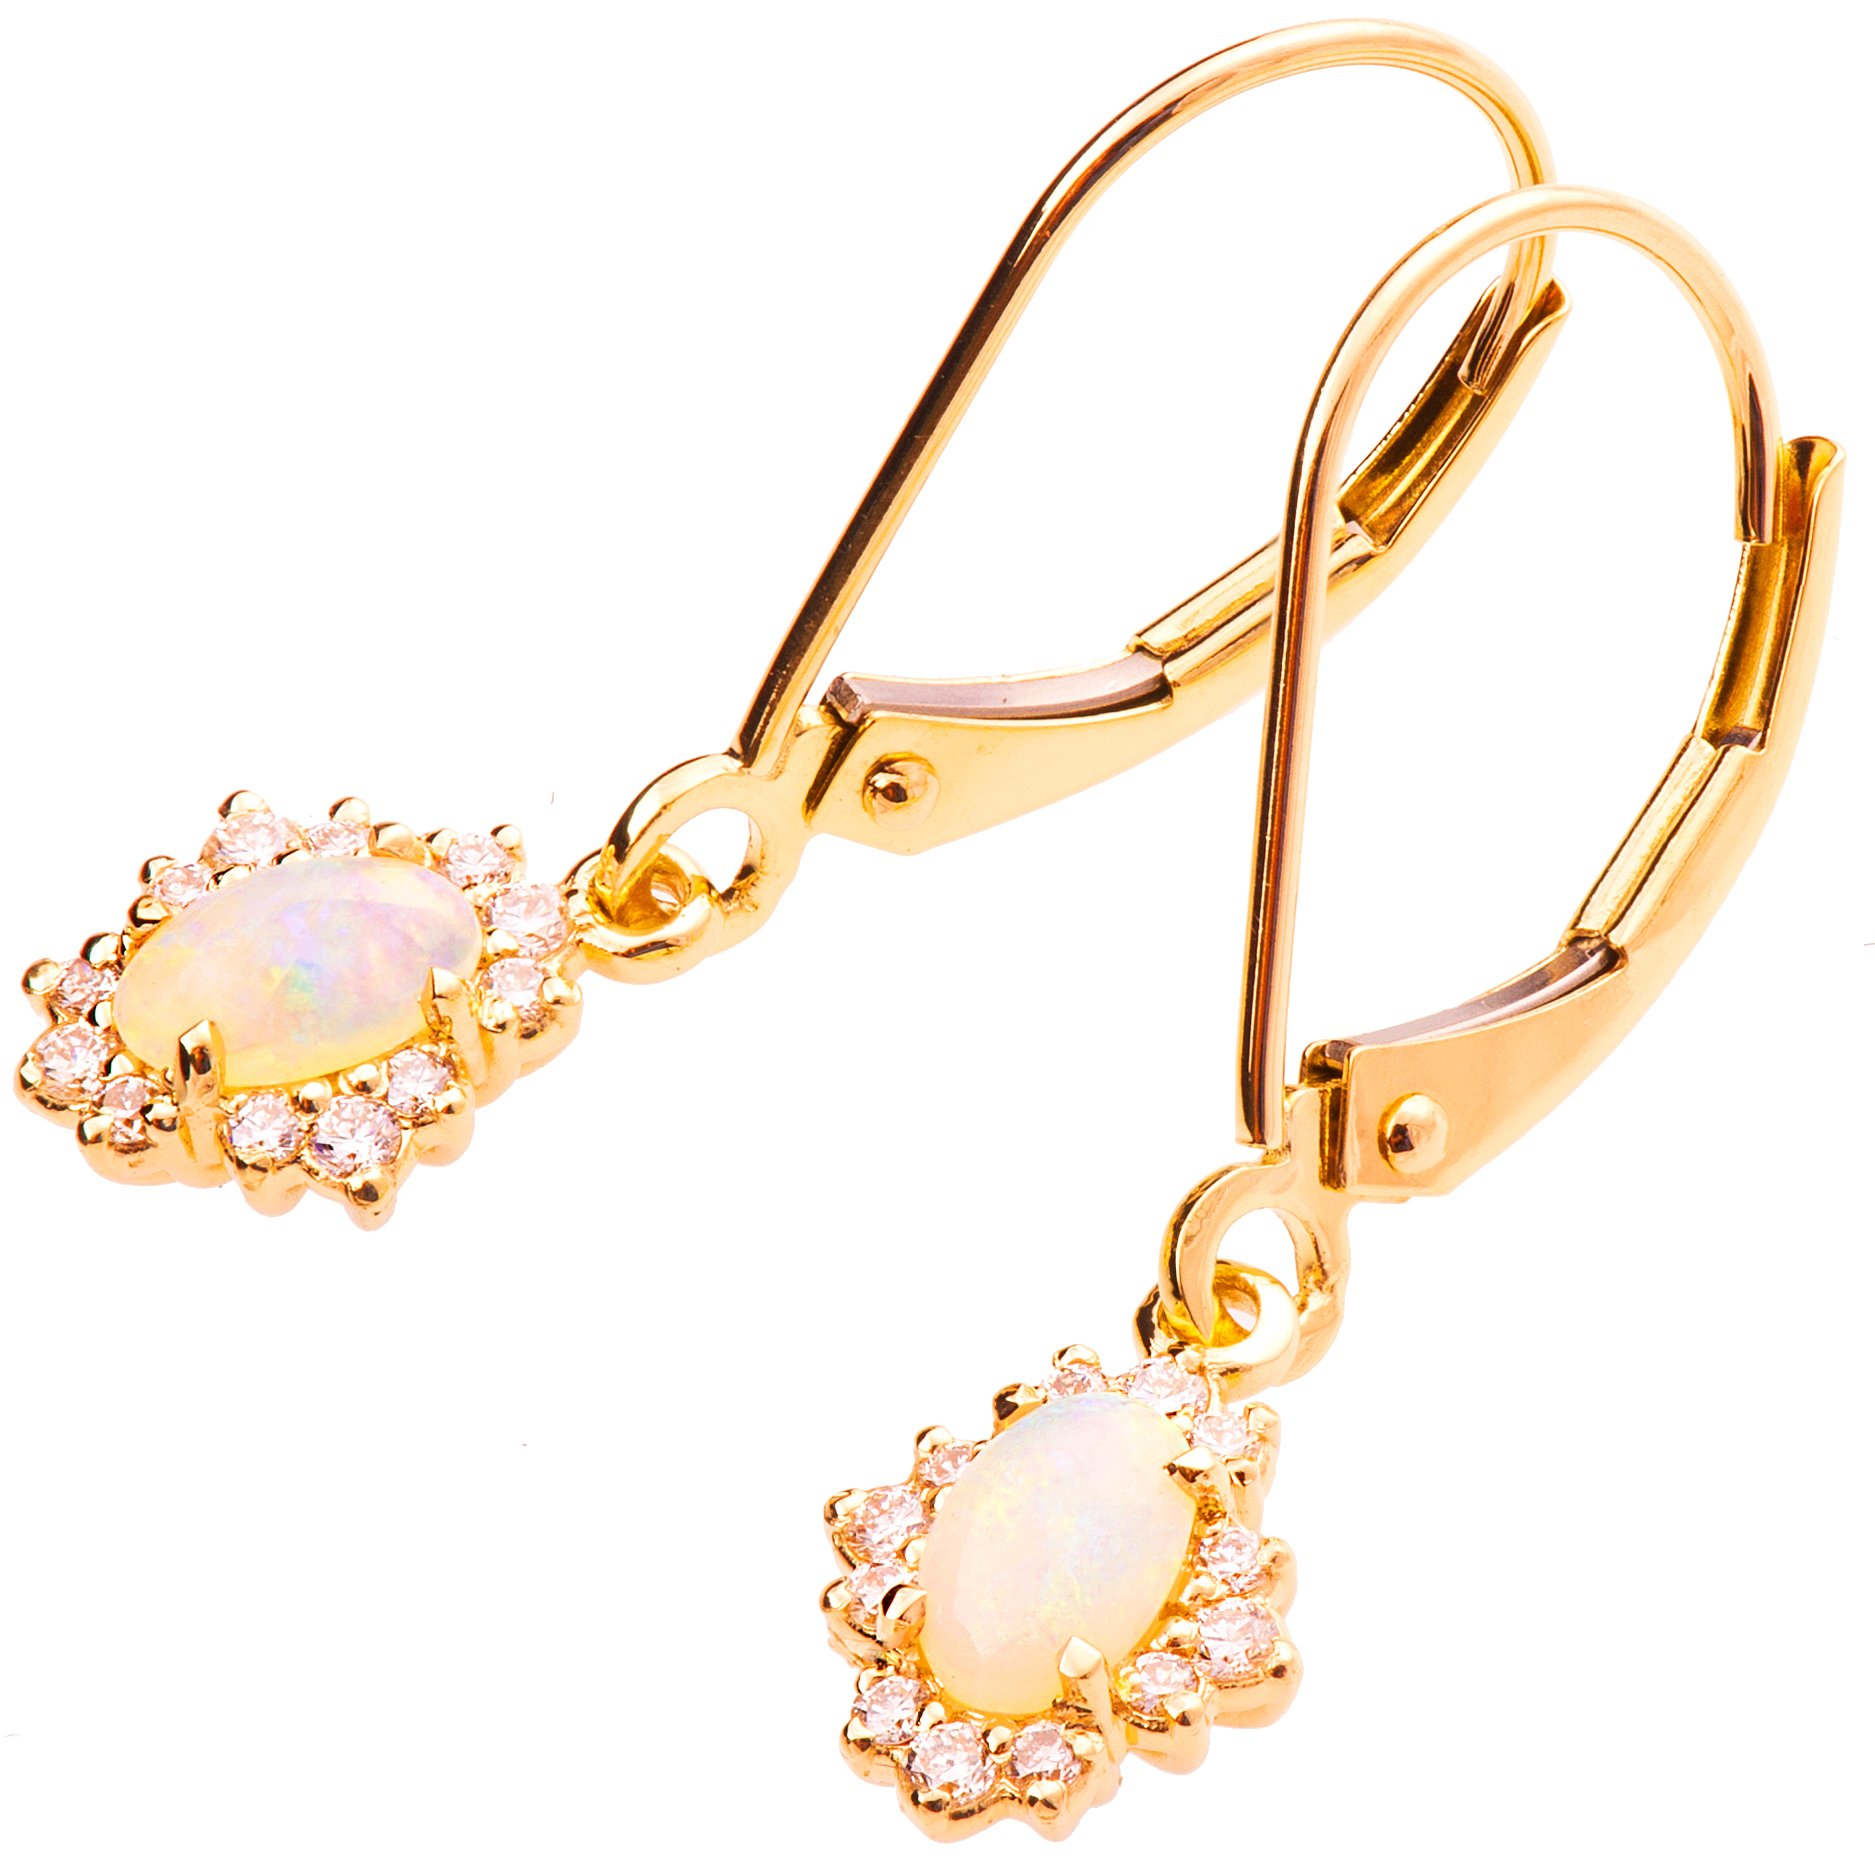 18K Rose Solid Gold Unique Opal Dangling Hang Earrings For Women Set With Diamonds and Australian Opal